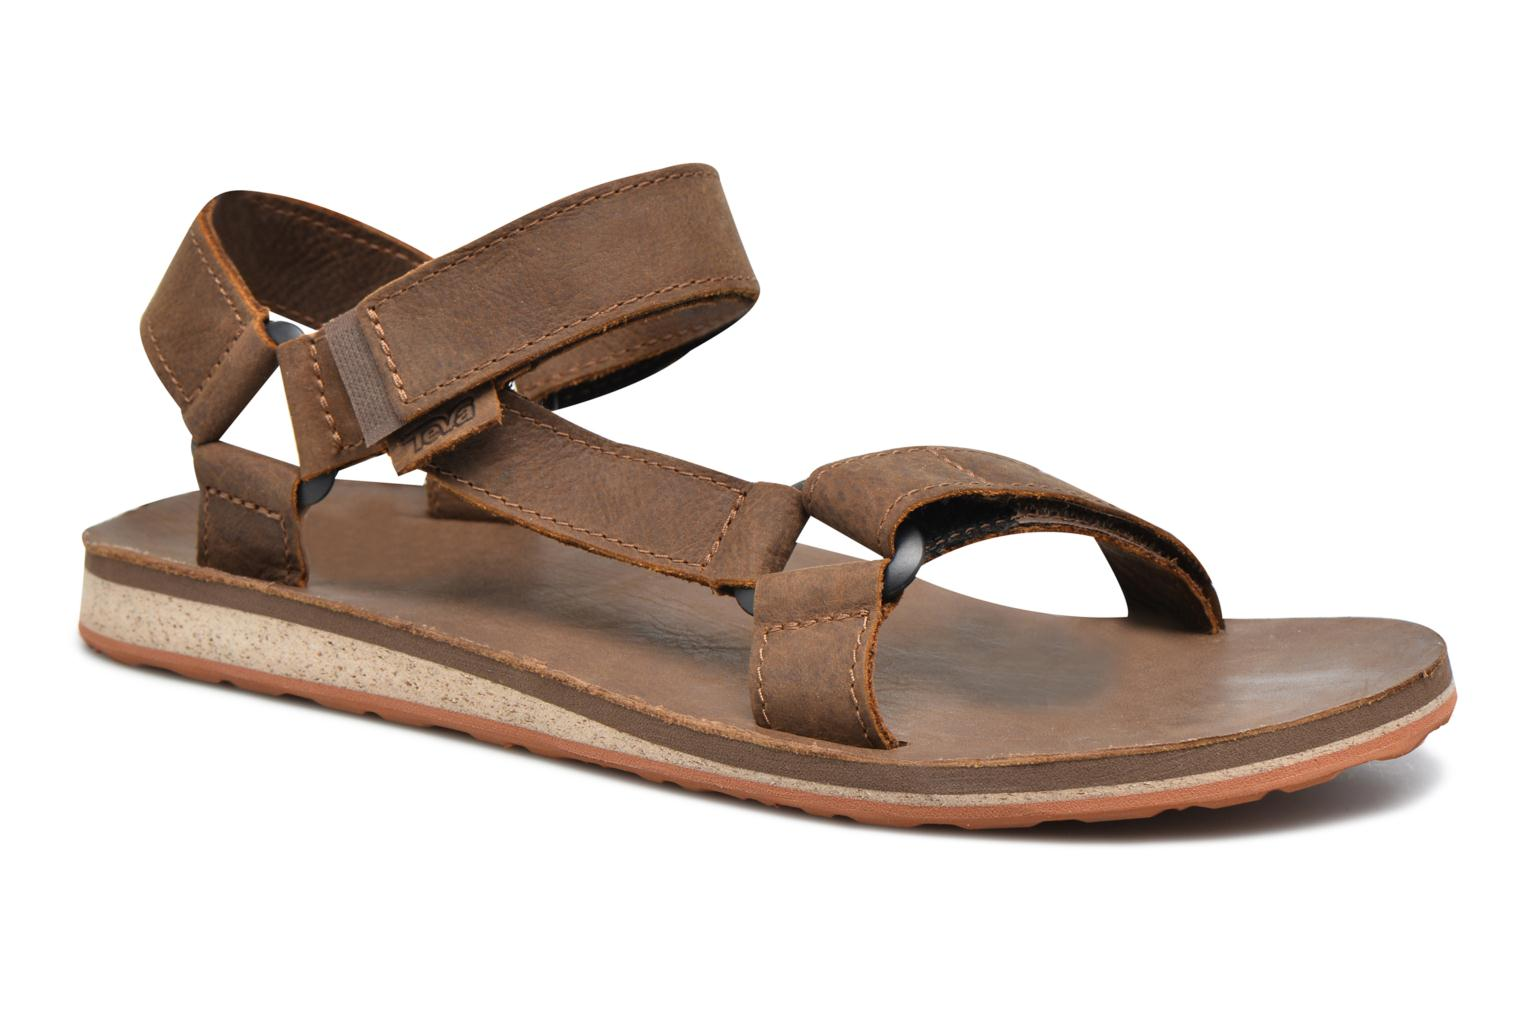 Original Universal Premium Leather by Teva